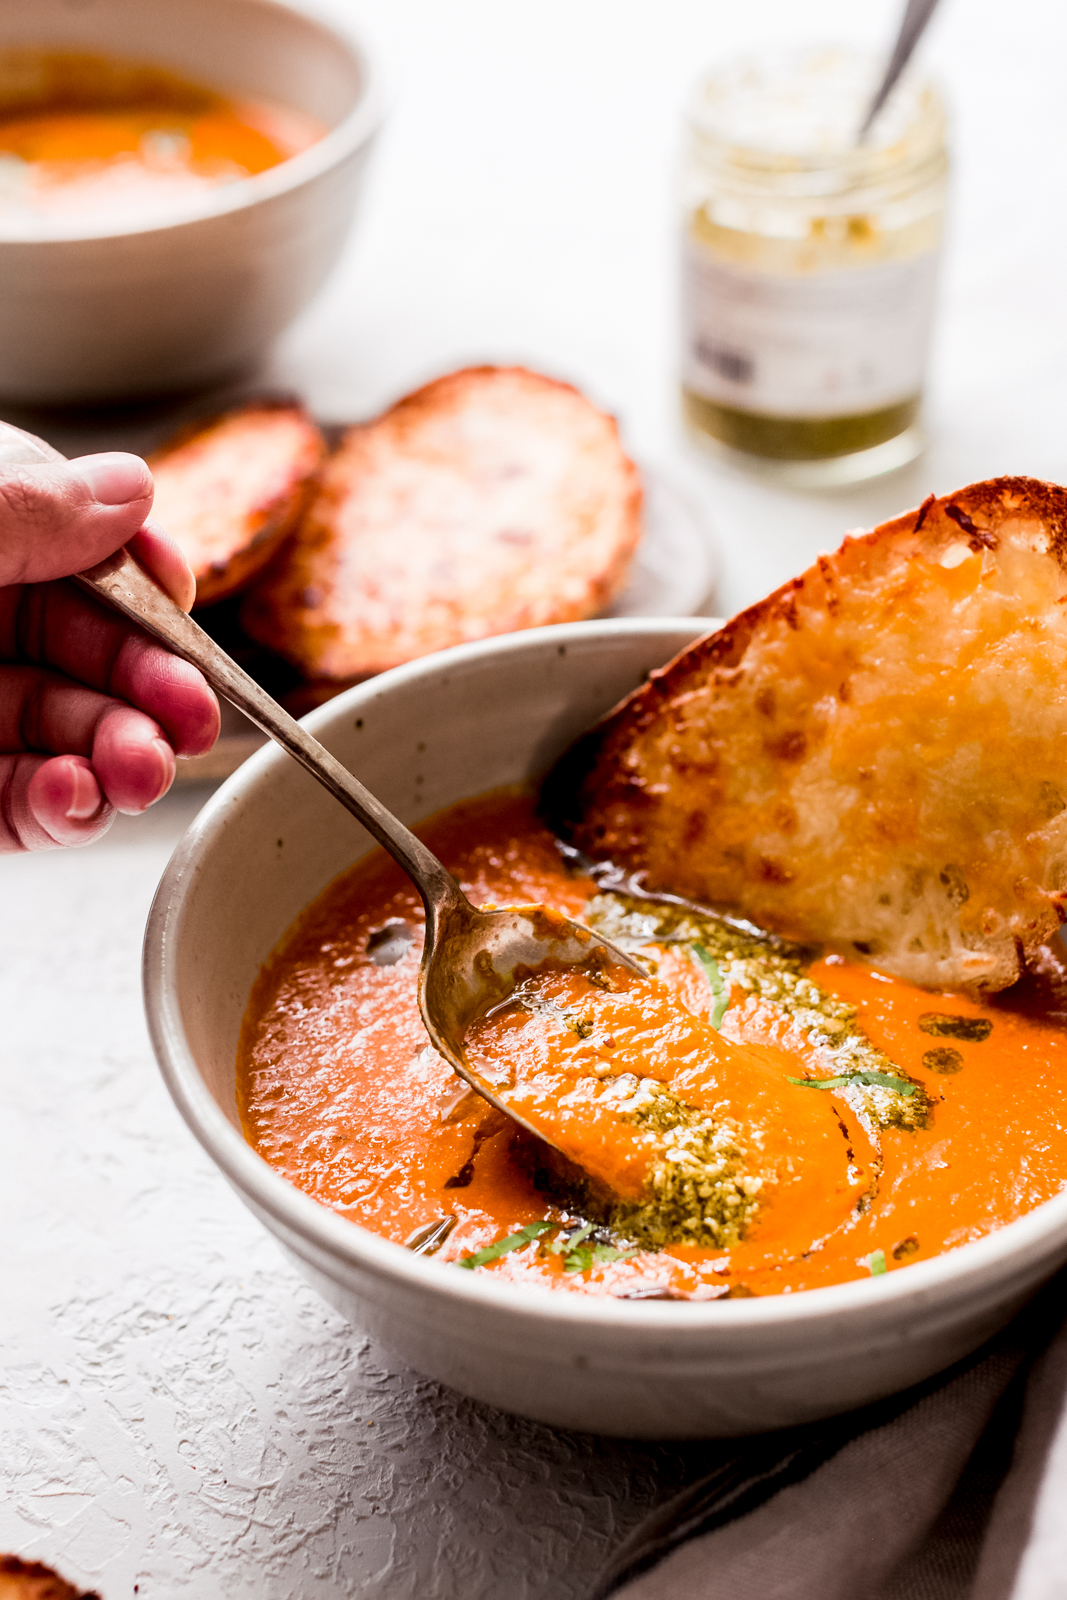 bowl of tomato basil soup with spoon being lifted by hand